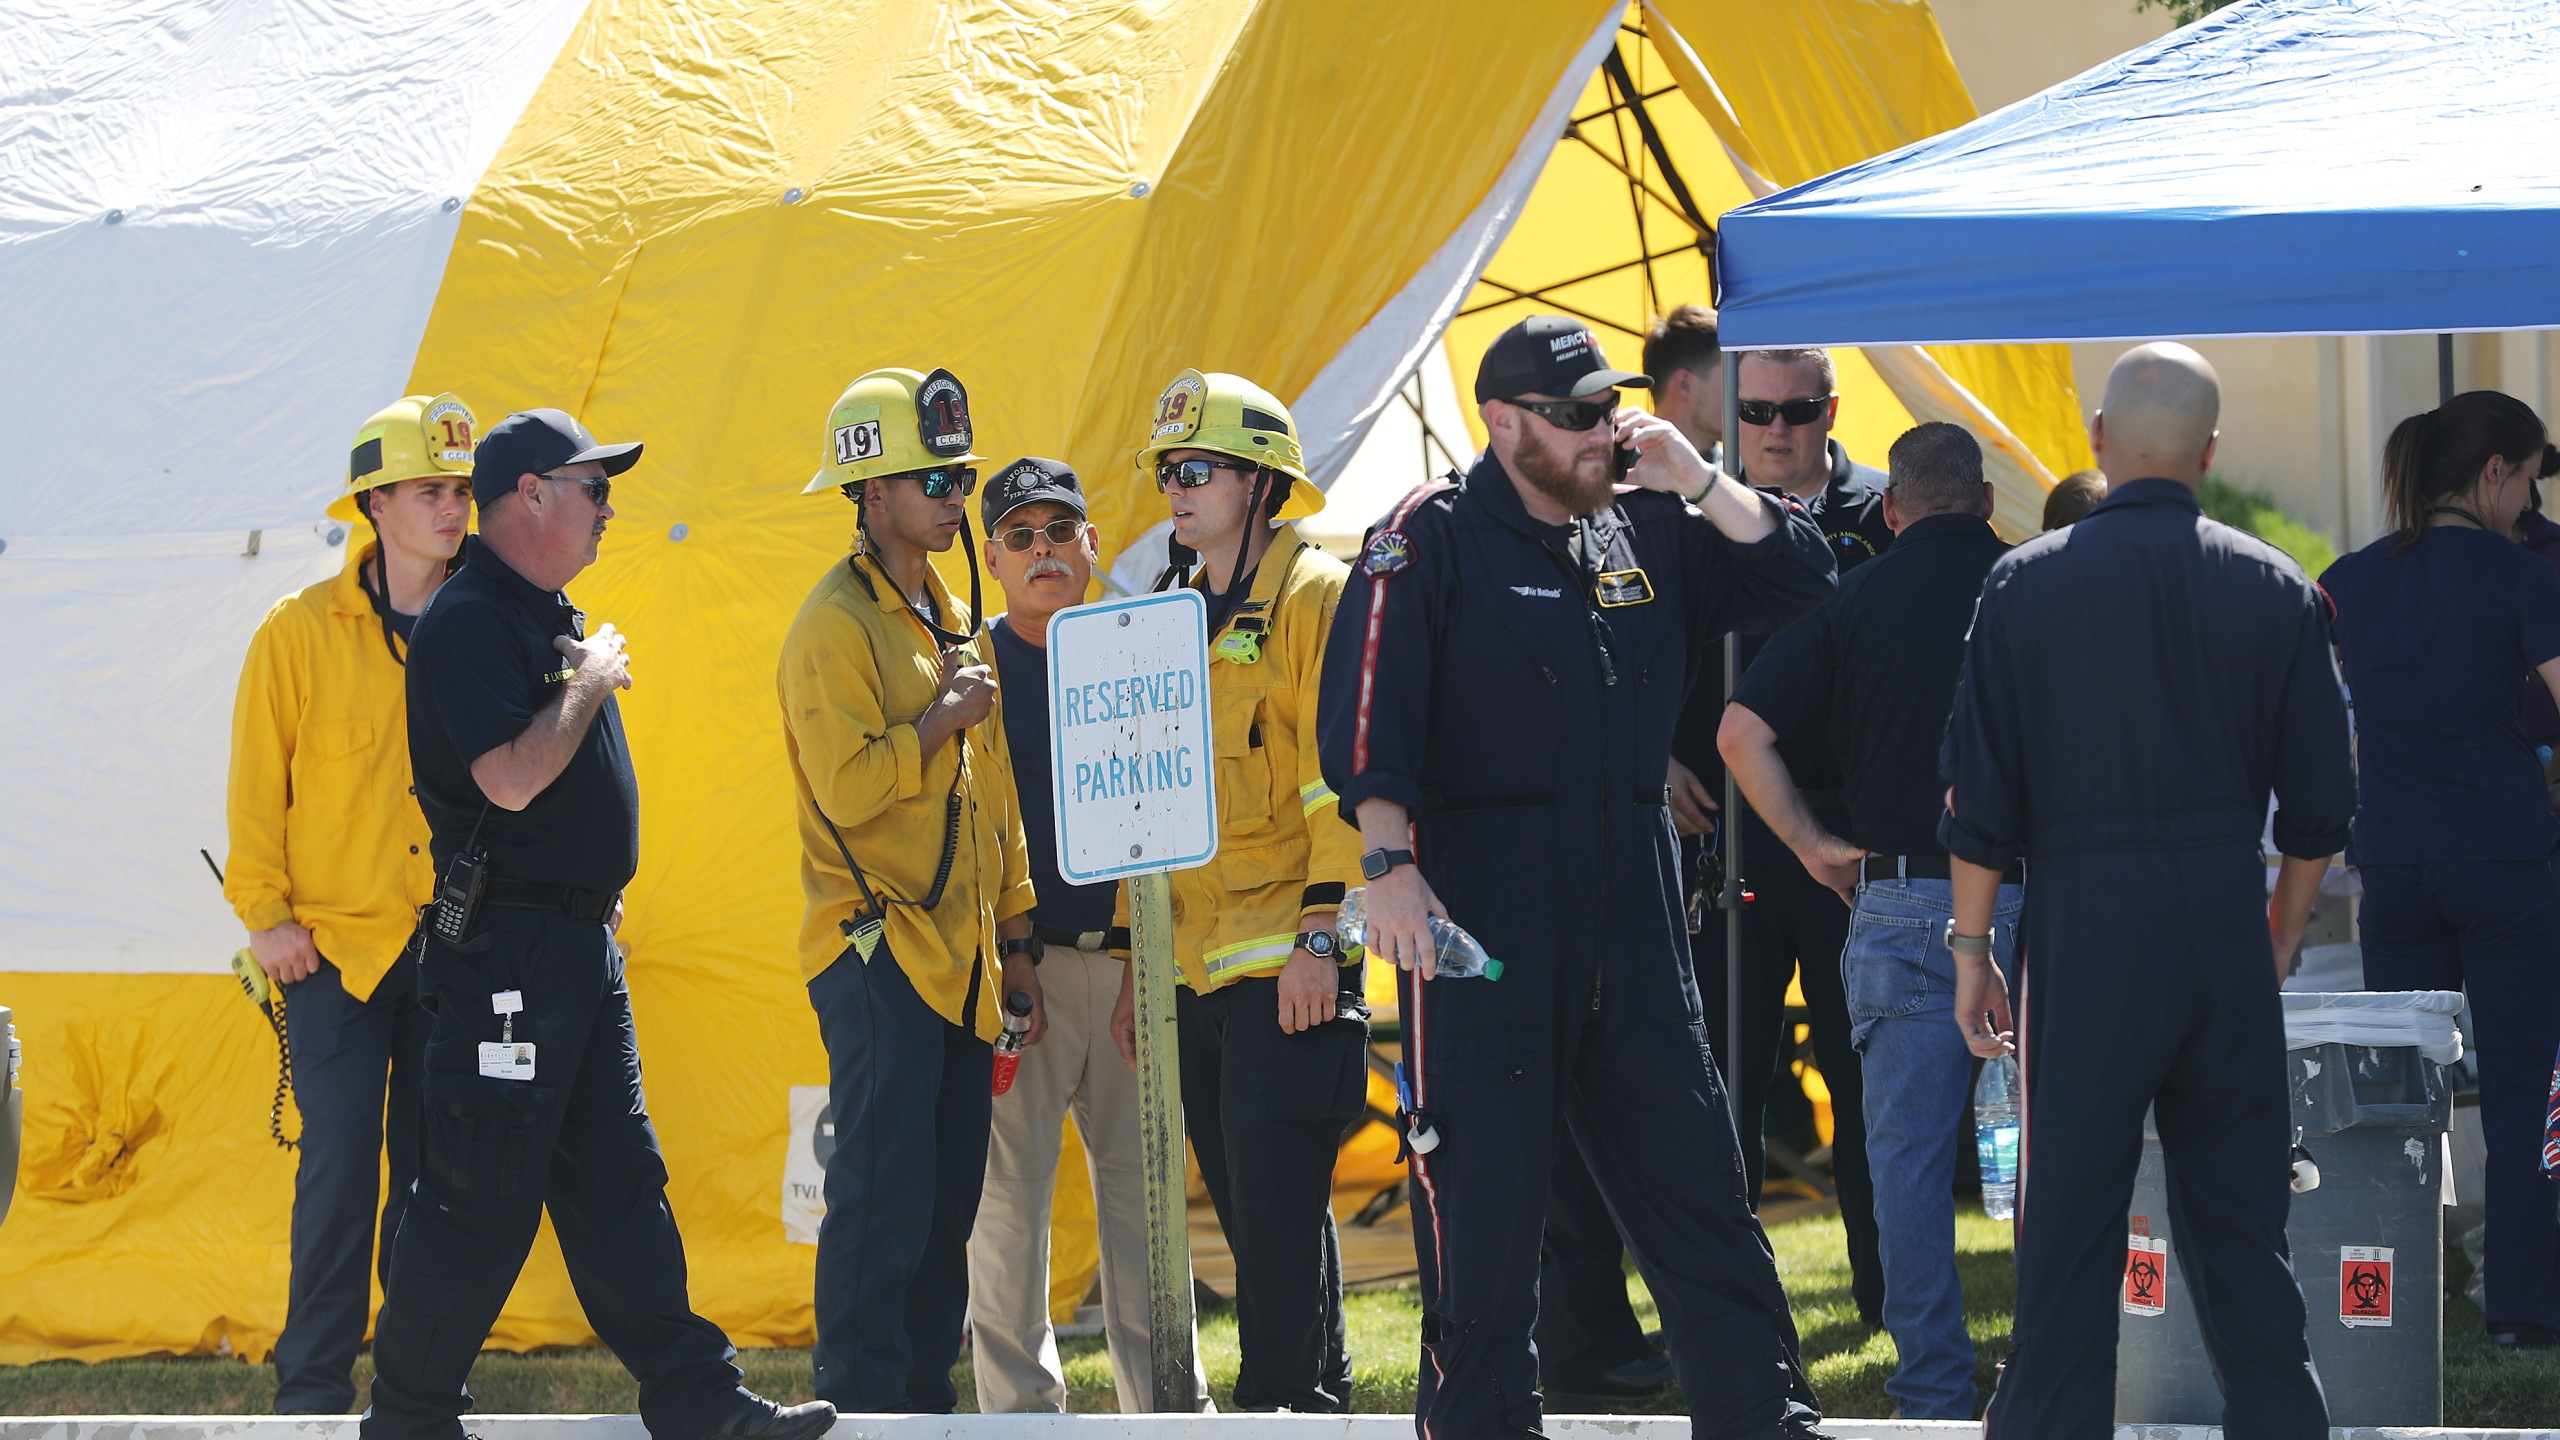 First responders gather in front of a tent set up outside Ridgecrest Regional Hospital after some patients were evacuated from the hospital following a 6.4 magnitude earthquake on July 4, 2019, in Ridgecrest, California. (Credit: Mario Tama/Getty Images)